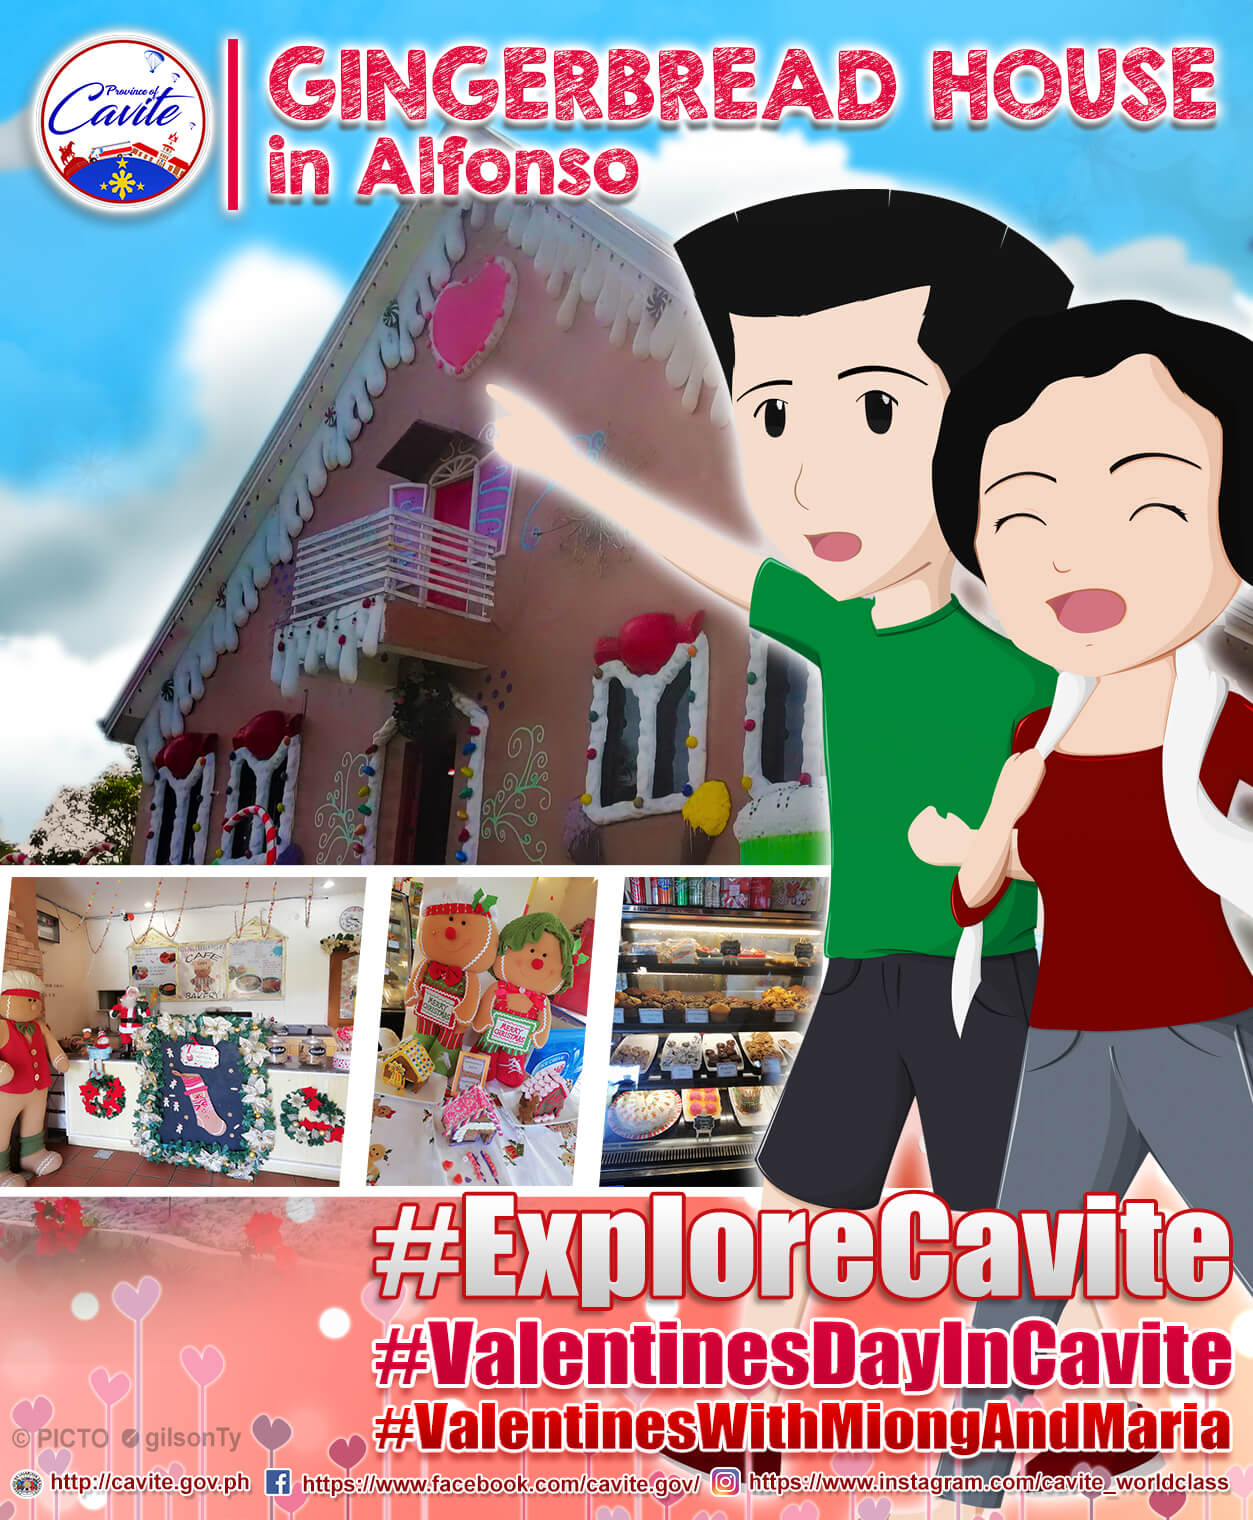 Explore Cavite – Gingerbread House in Alfonso